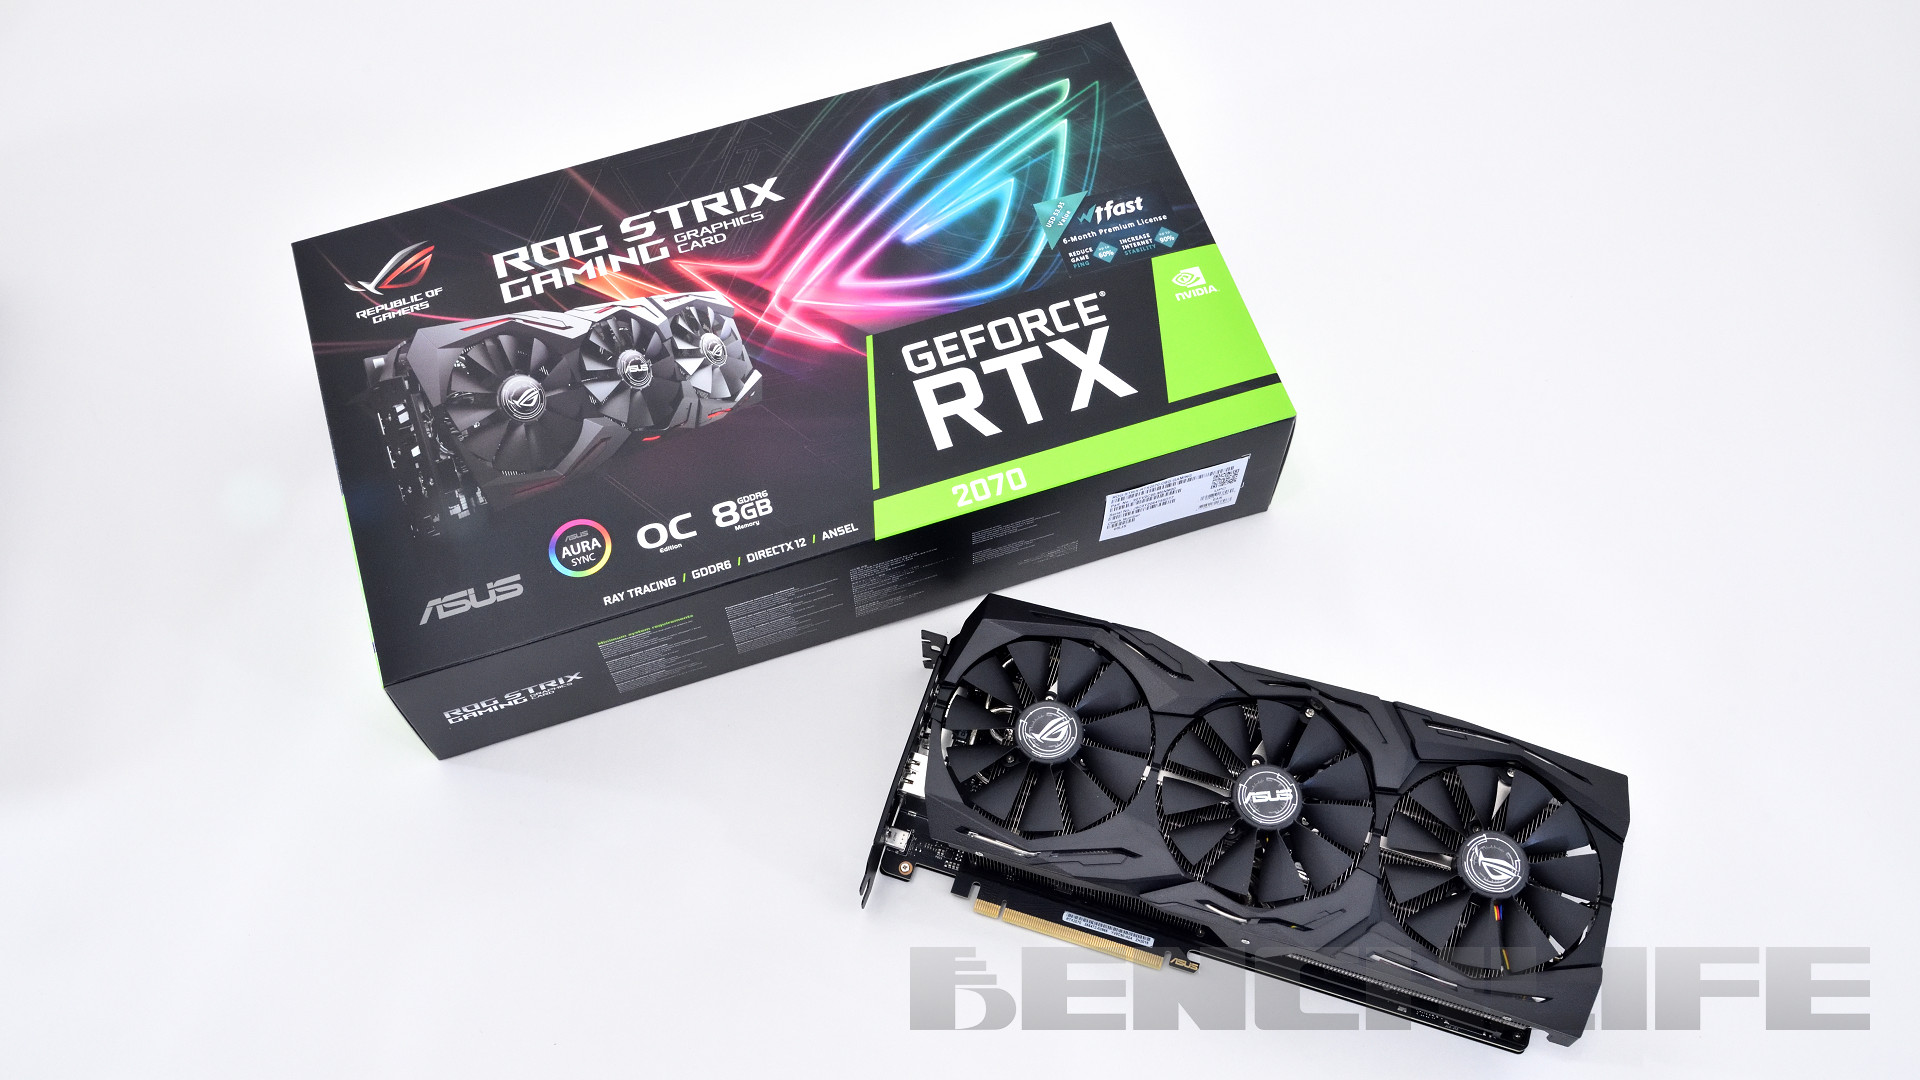 WQHD 解析度玩遊戲新選項,ASUS ROG Strix GeForce RTX 2070 OC Edition 實測